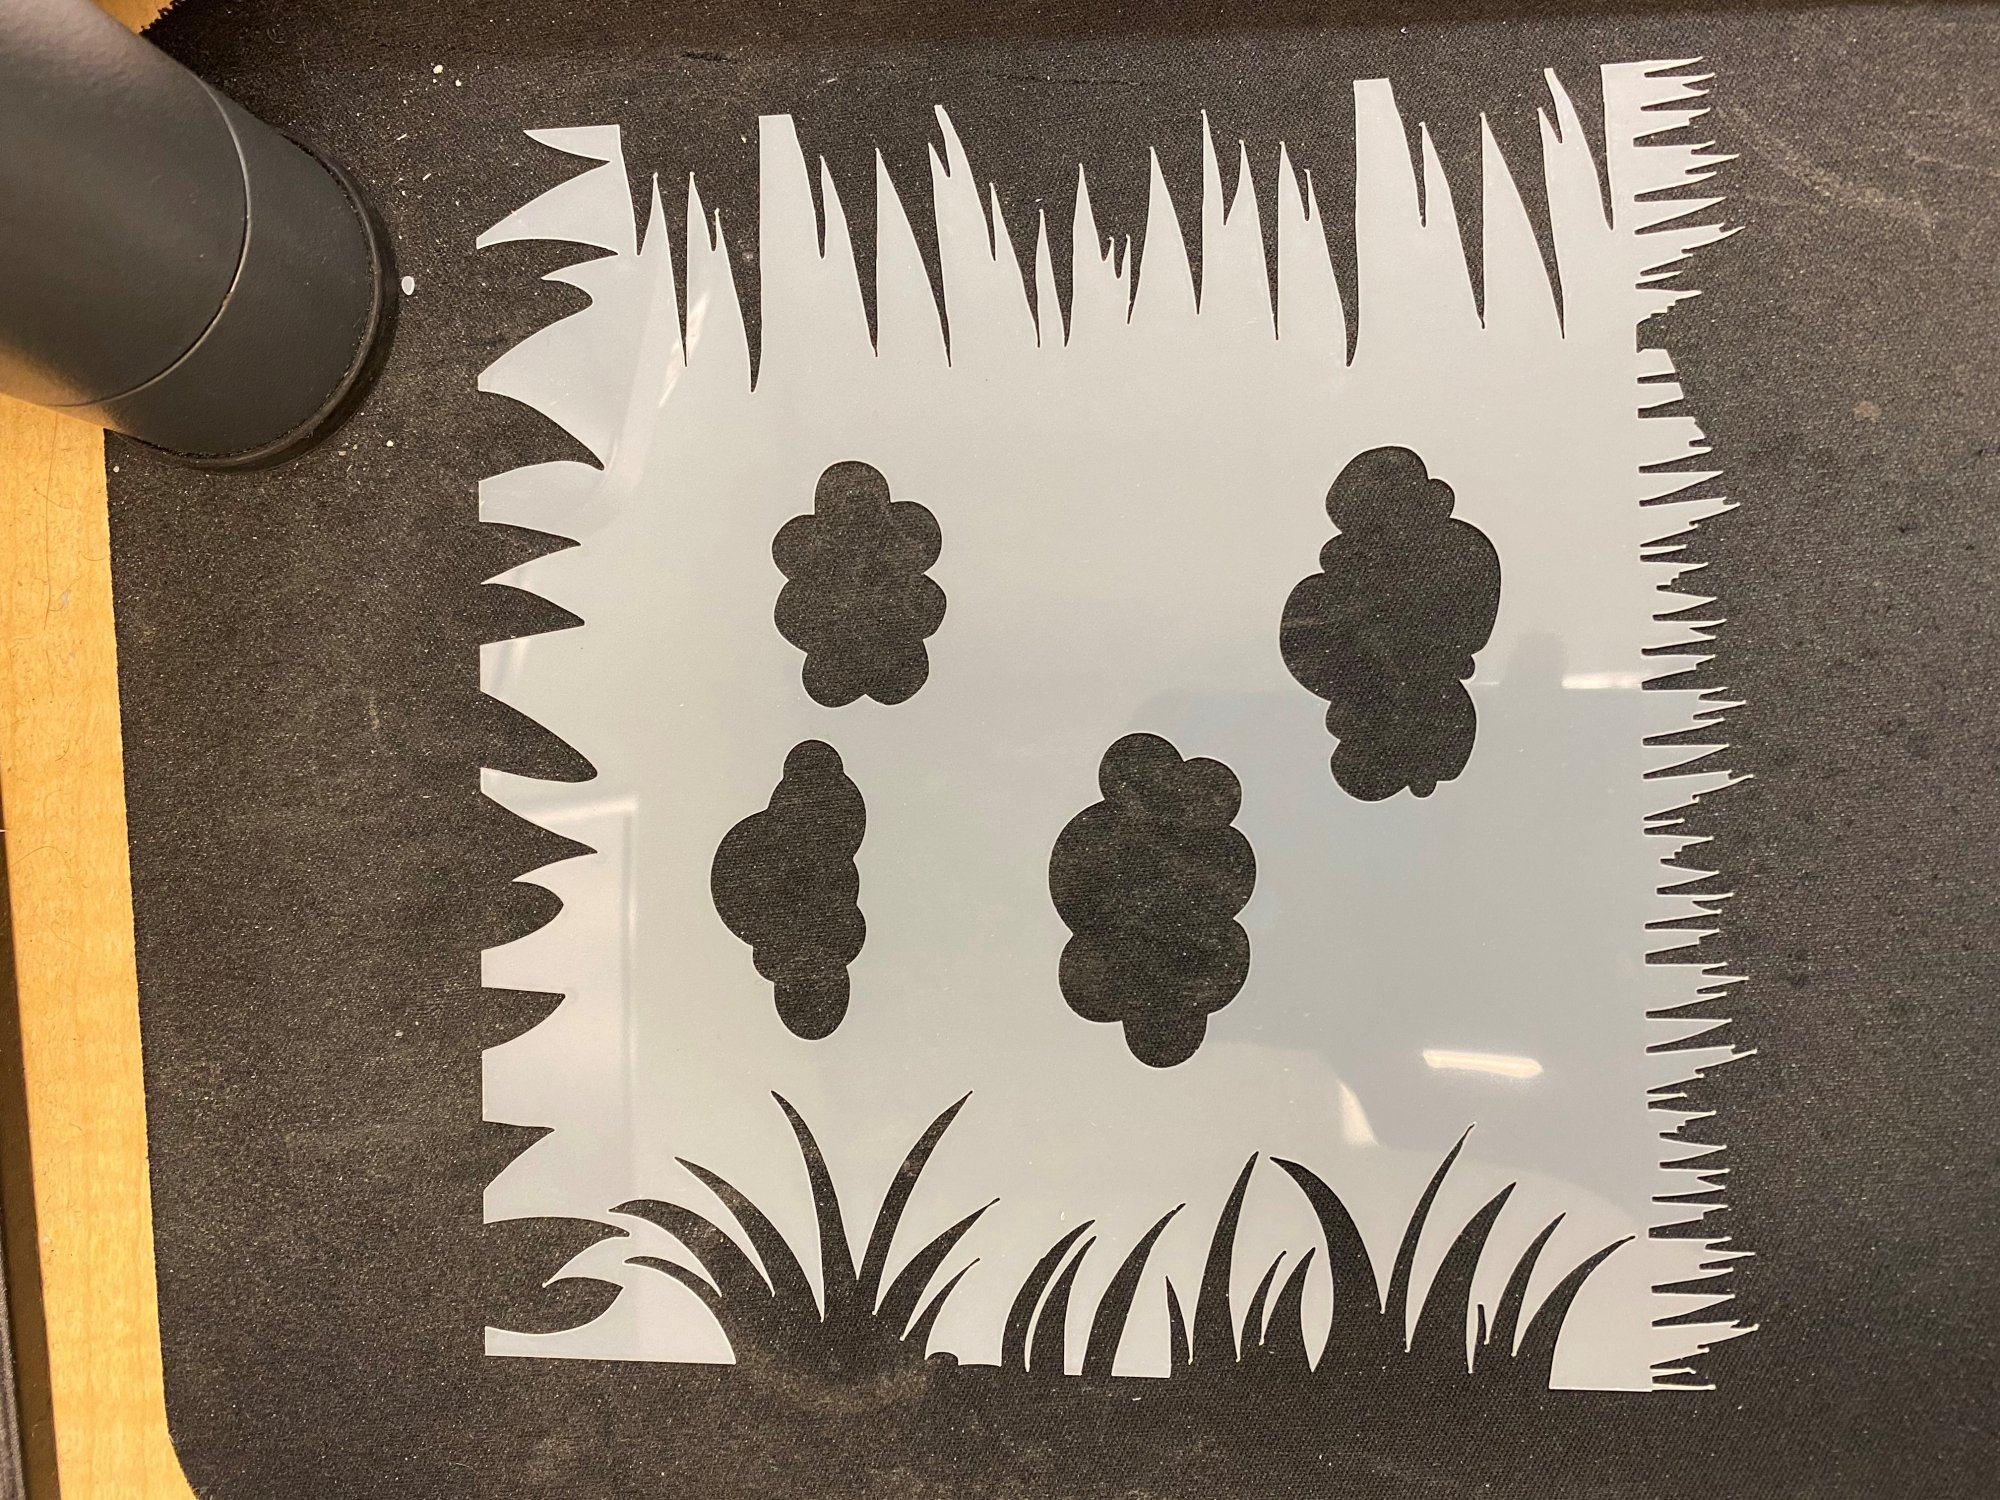 Scrapping for Less 6x6 Stencil Grass and Clouds